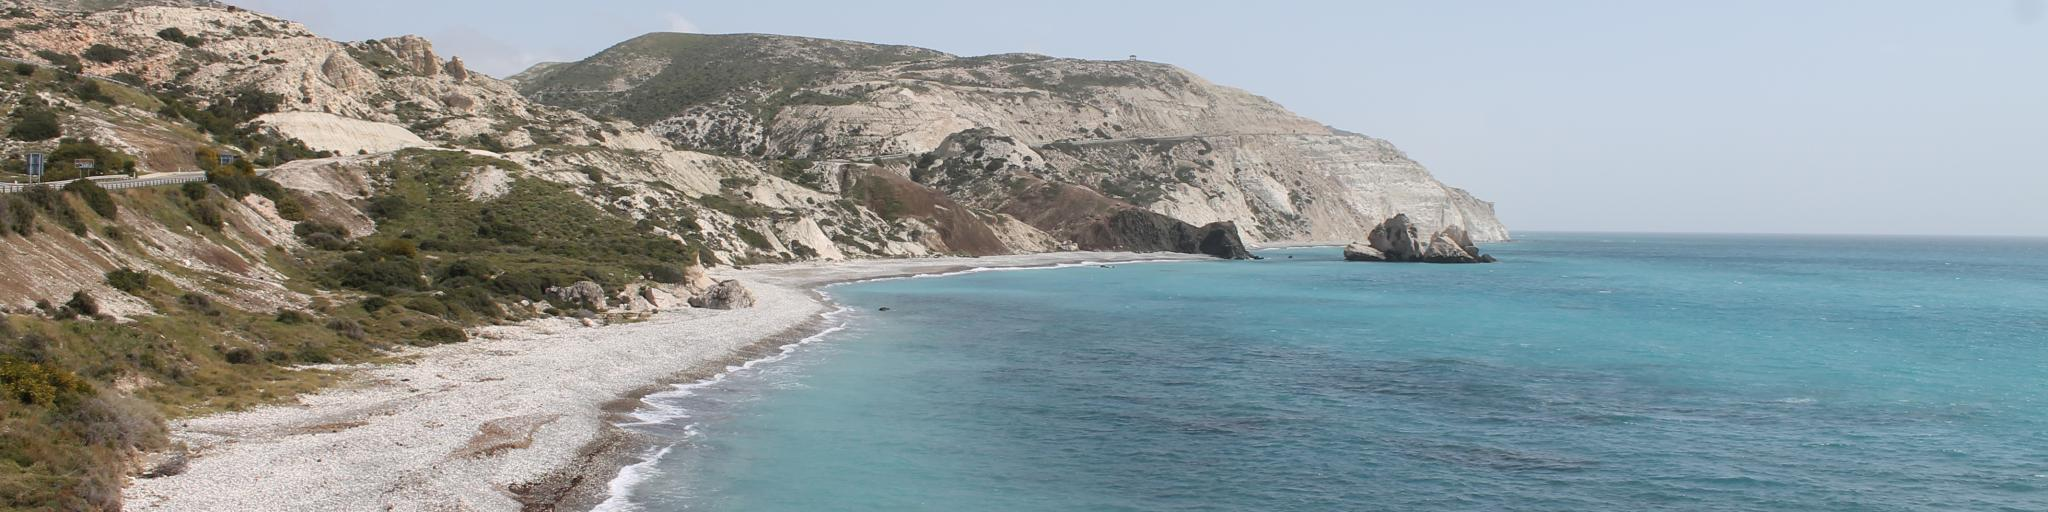 Turquoise water laps against the pebble beach at Paphos, Cyprus